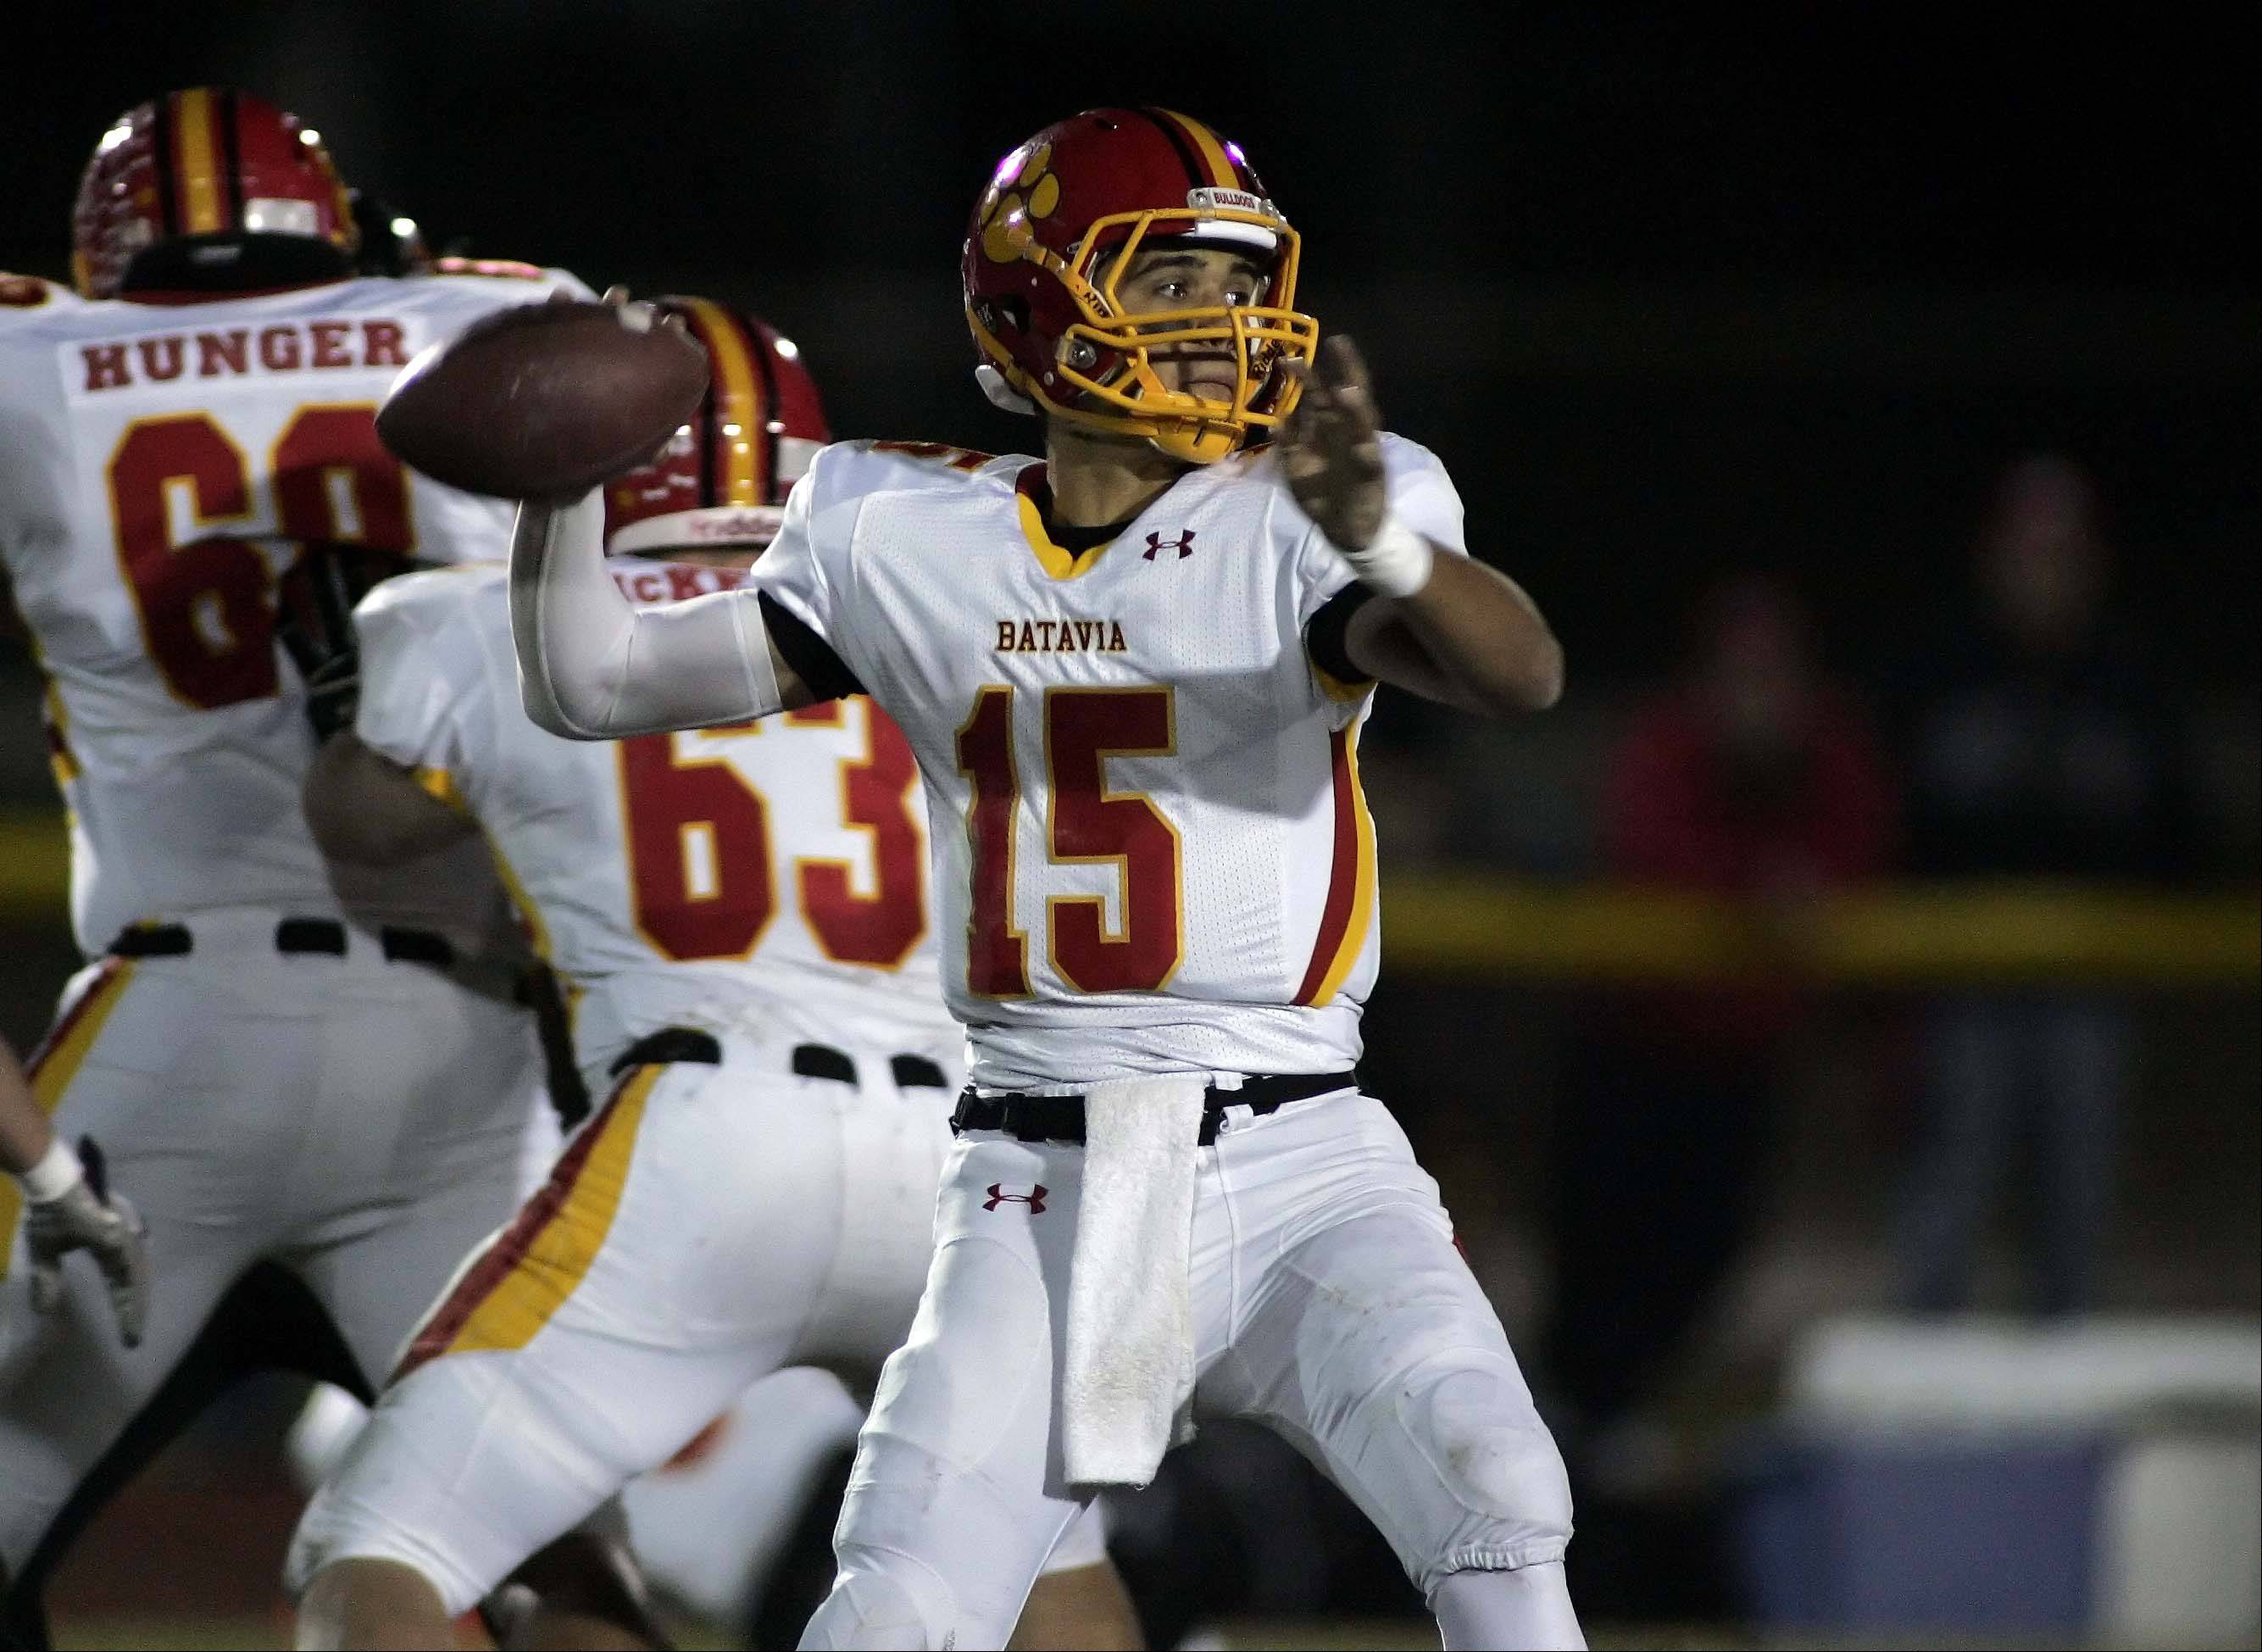 Batavia's Micah Coffey looks for an open receiver.